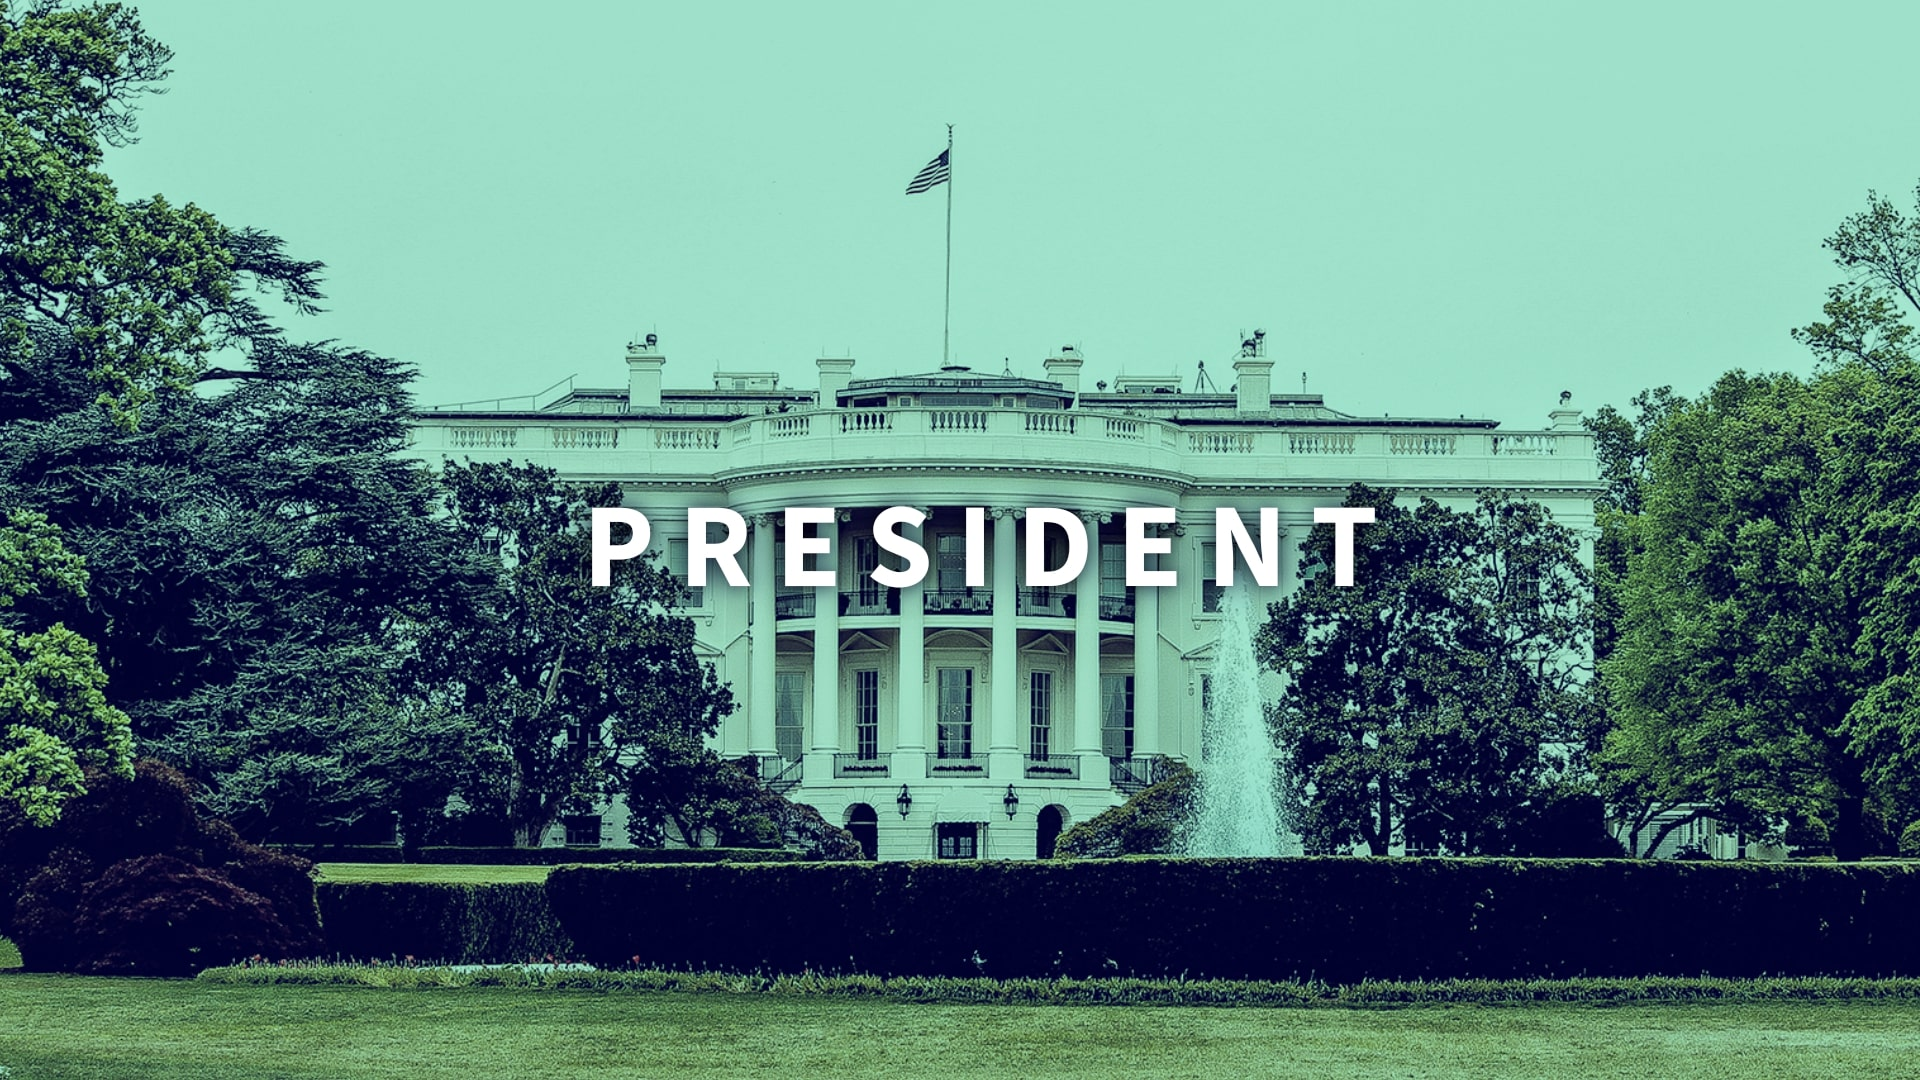 Select PRESIDENT contest